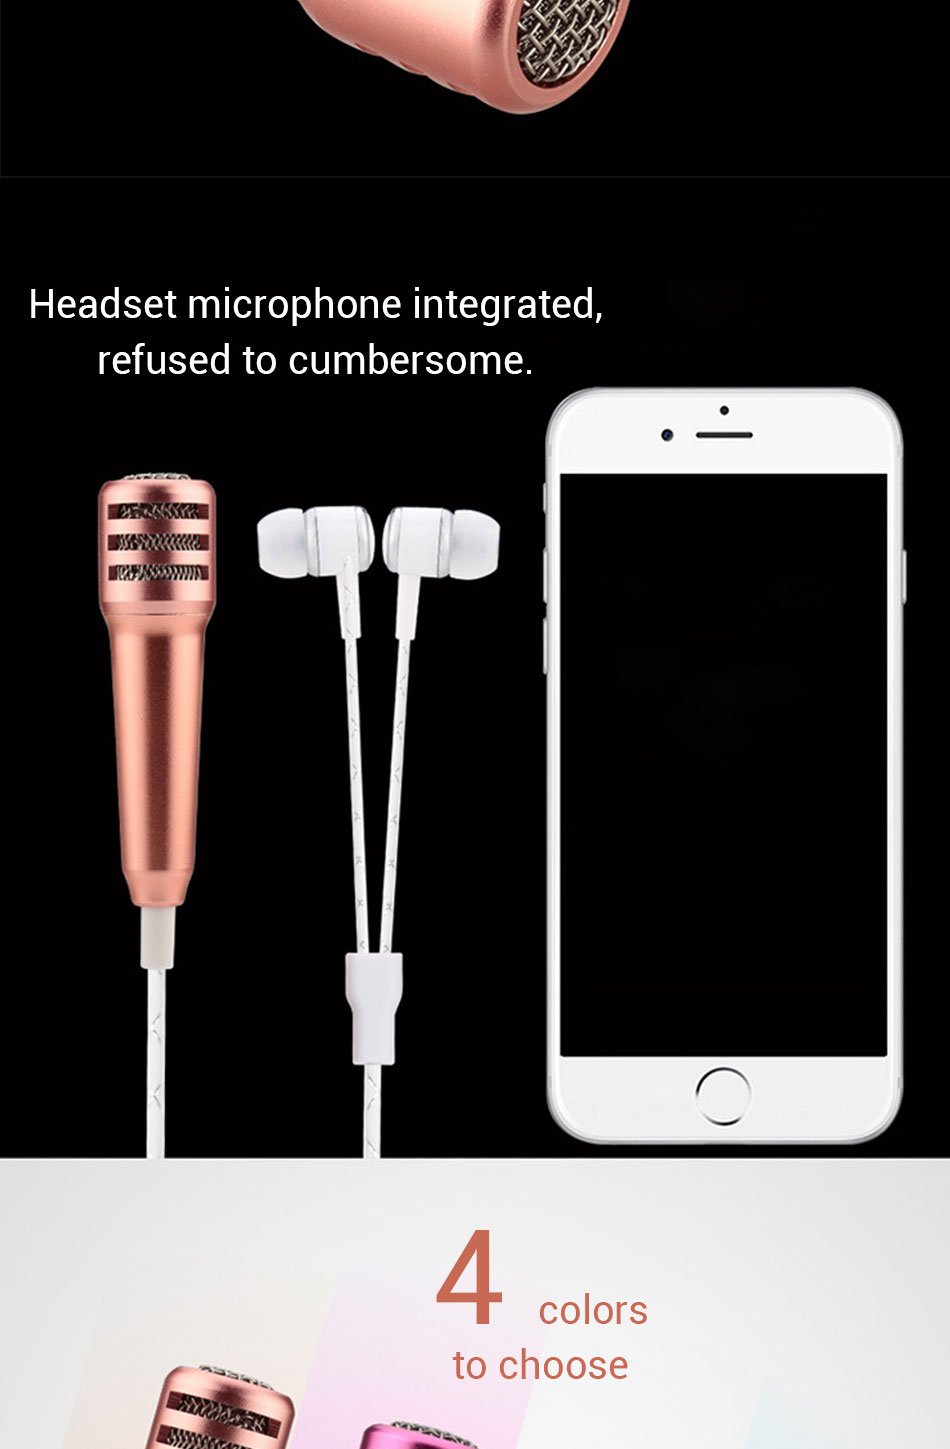 2017 Protable K Song Mini Microphone With Headphone For Kids Gift, Universal KTV Karaoke Mobile Phone Computer Microphone Toy P4